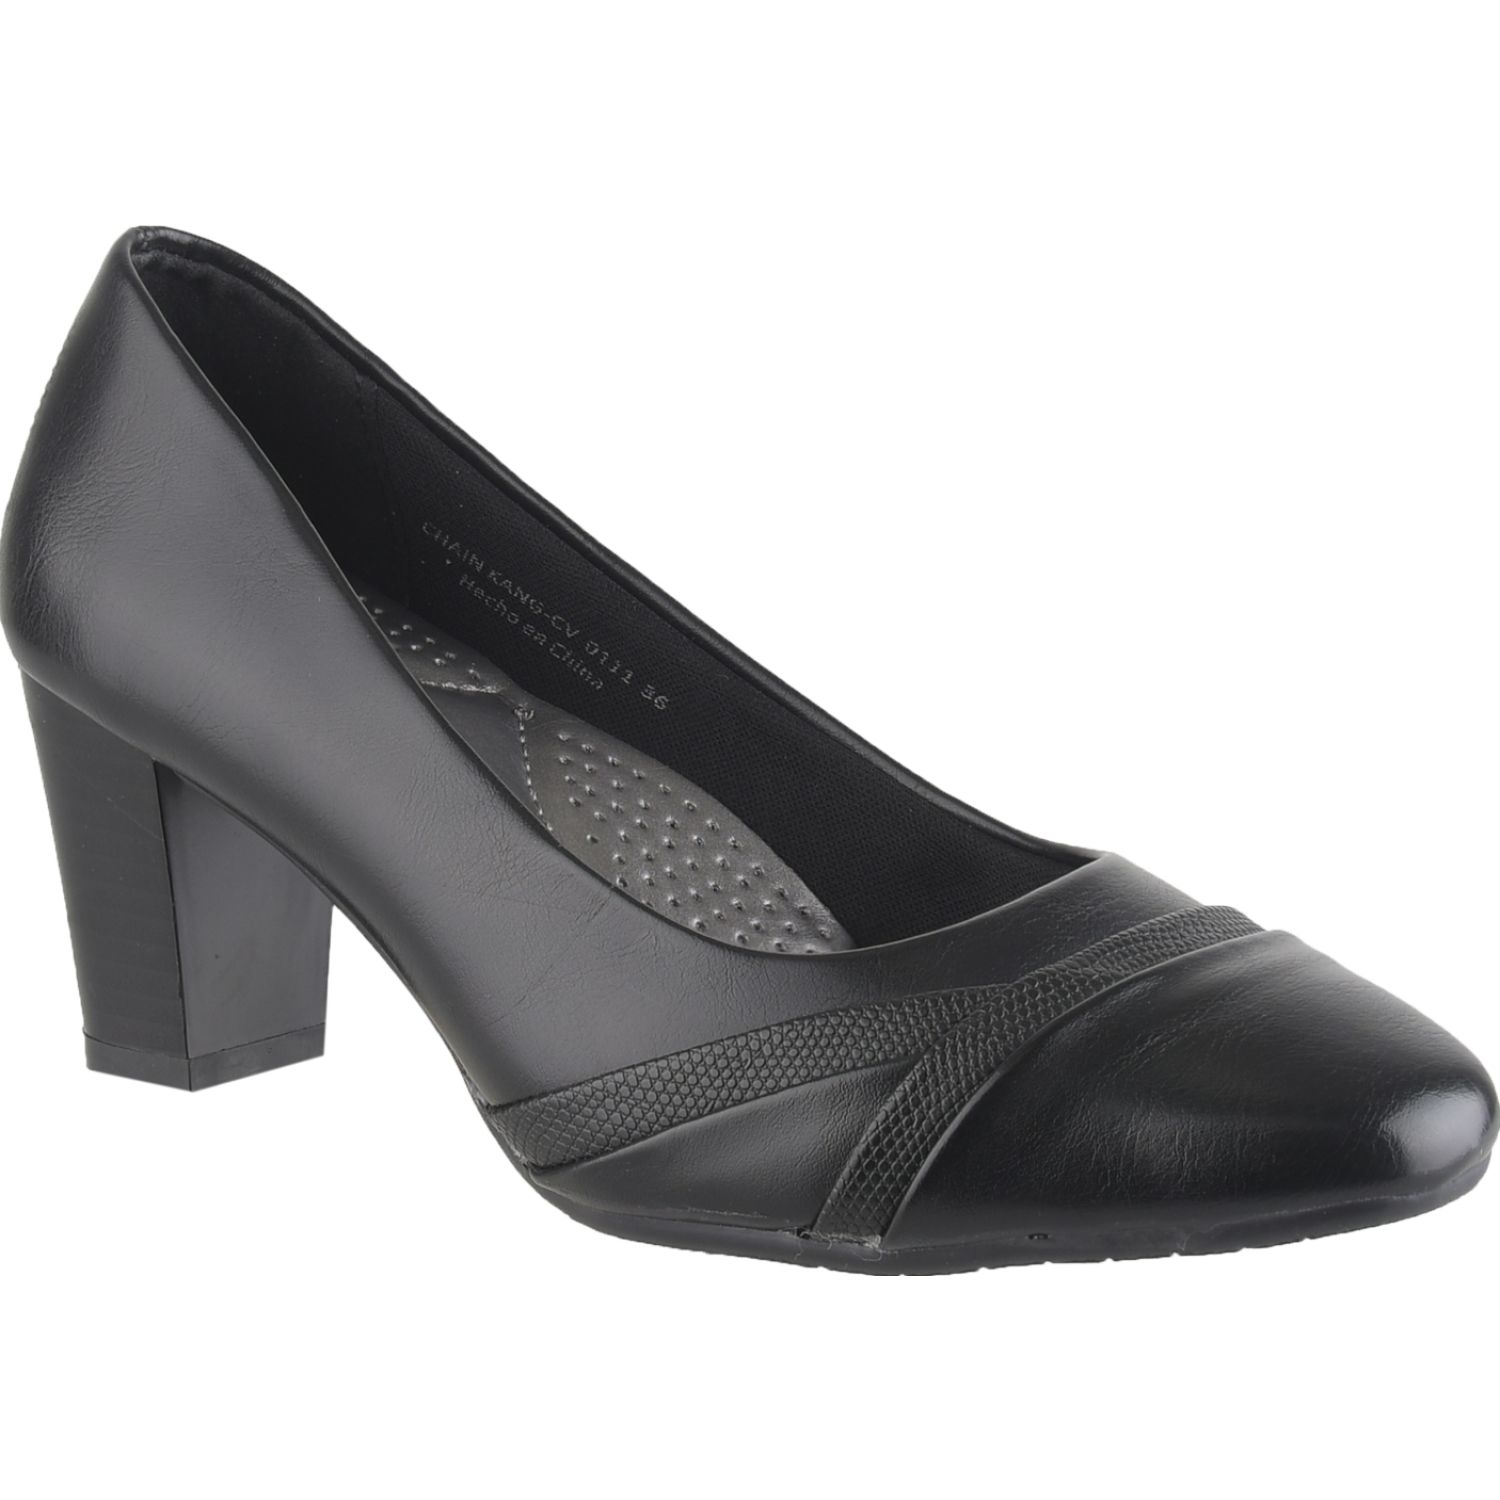 Platanitos Cv 0111 Negro Estiletos y pumps